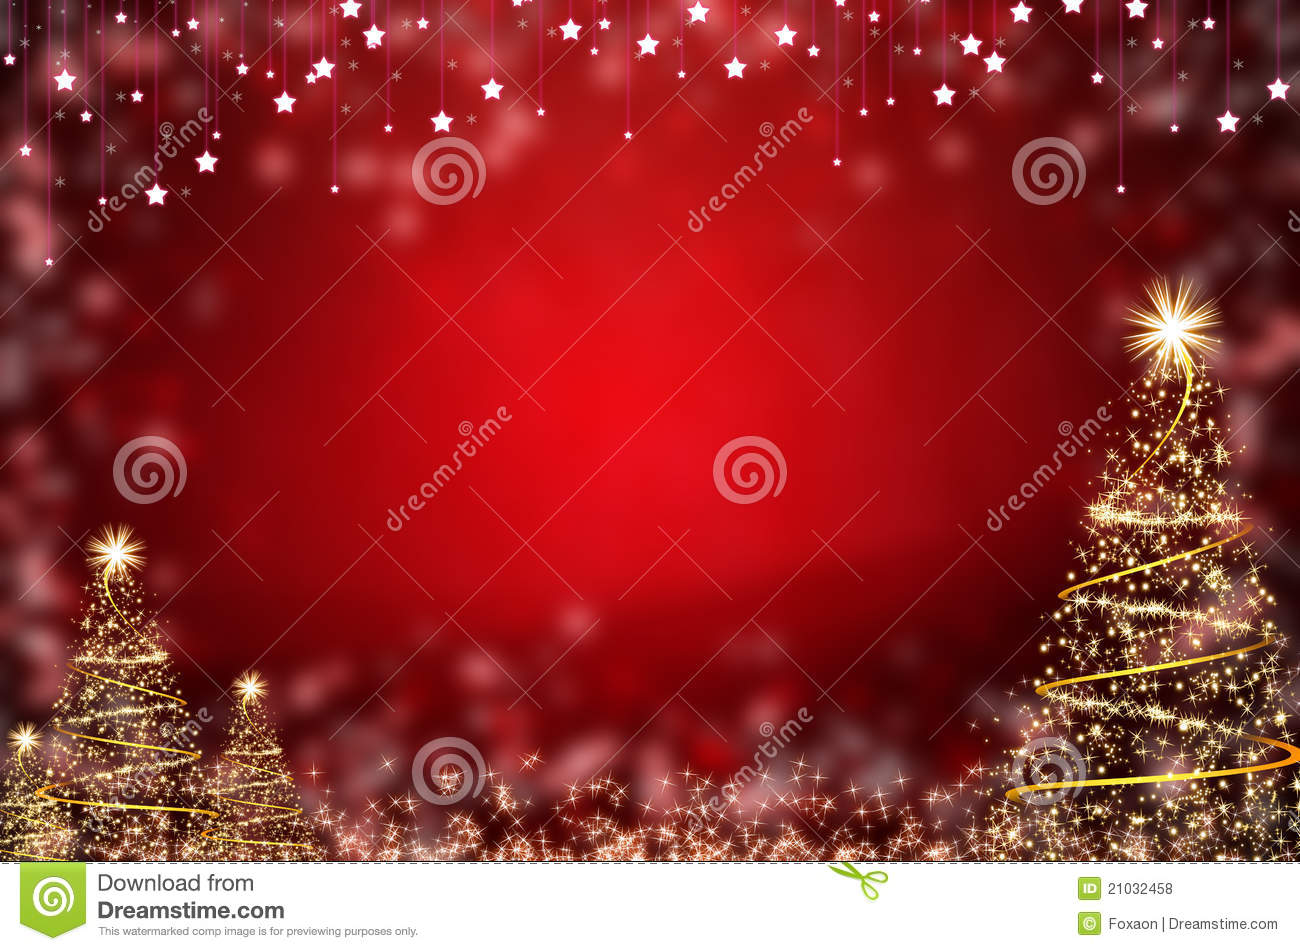 winter red christmas tree background stock illustration